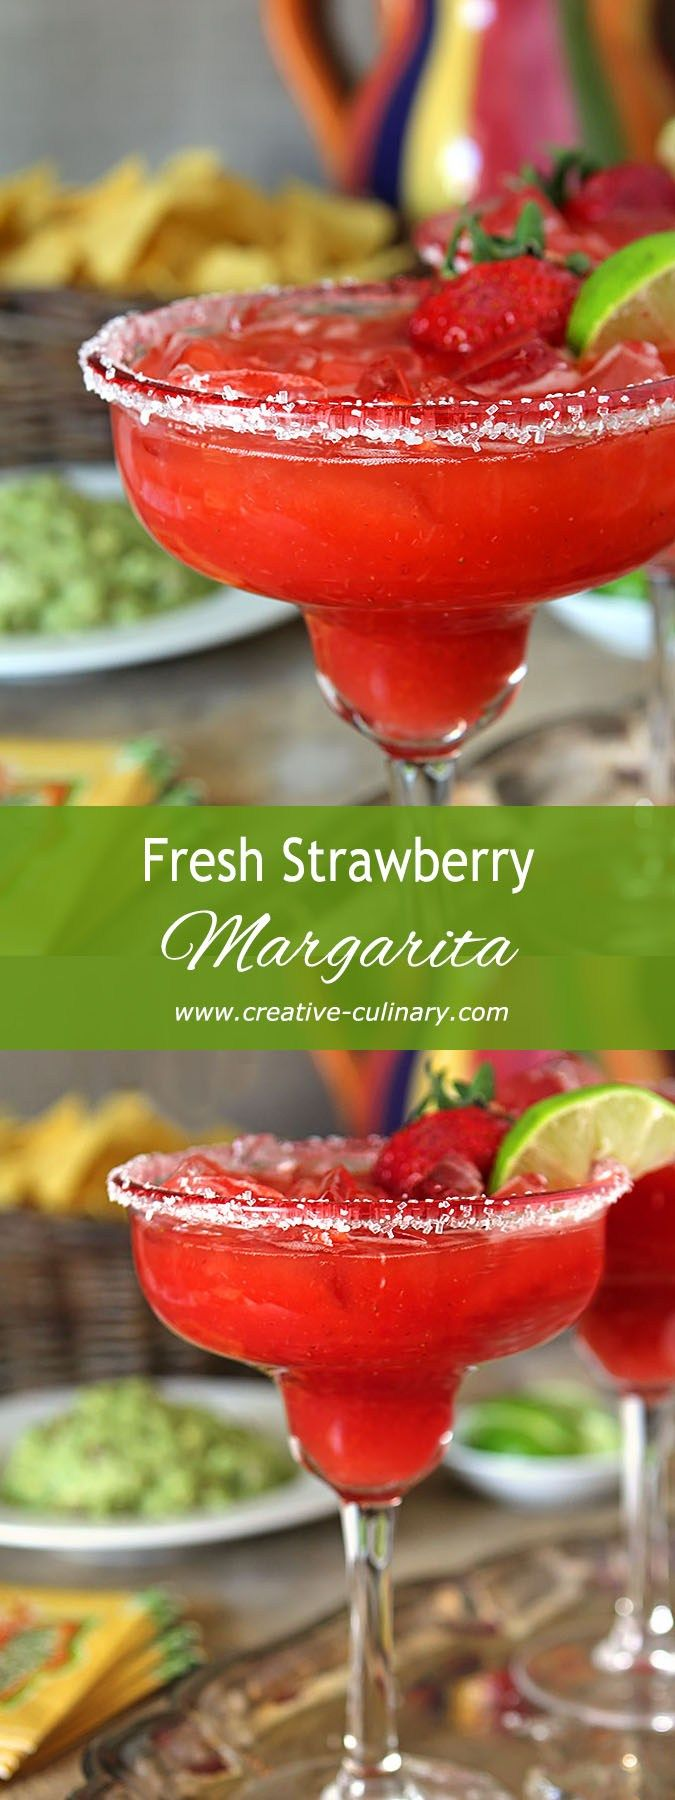 how to make a strawberry margarita on the rocks